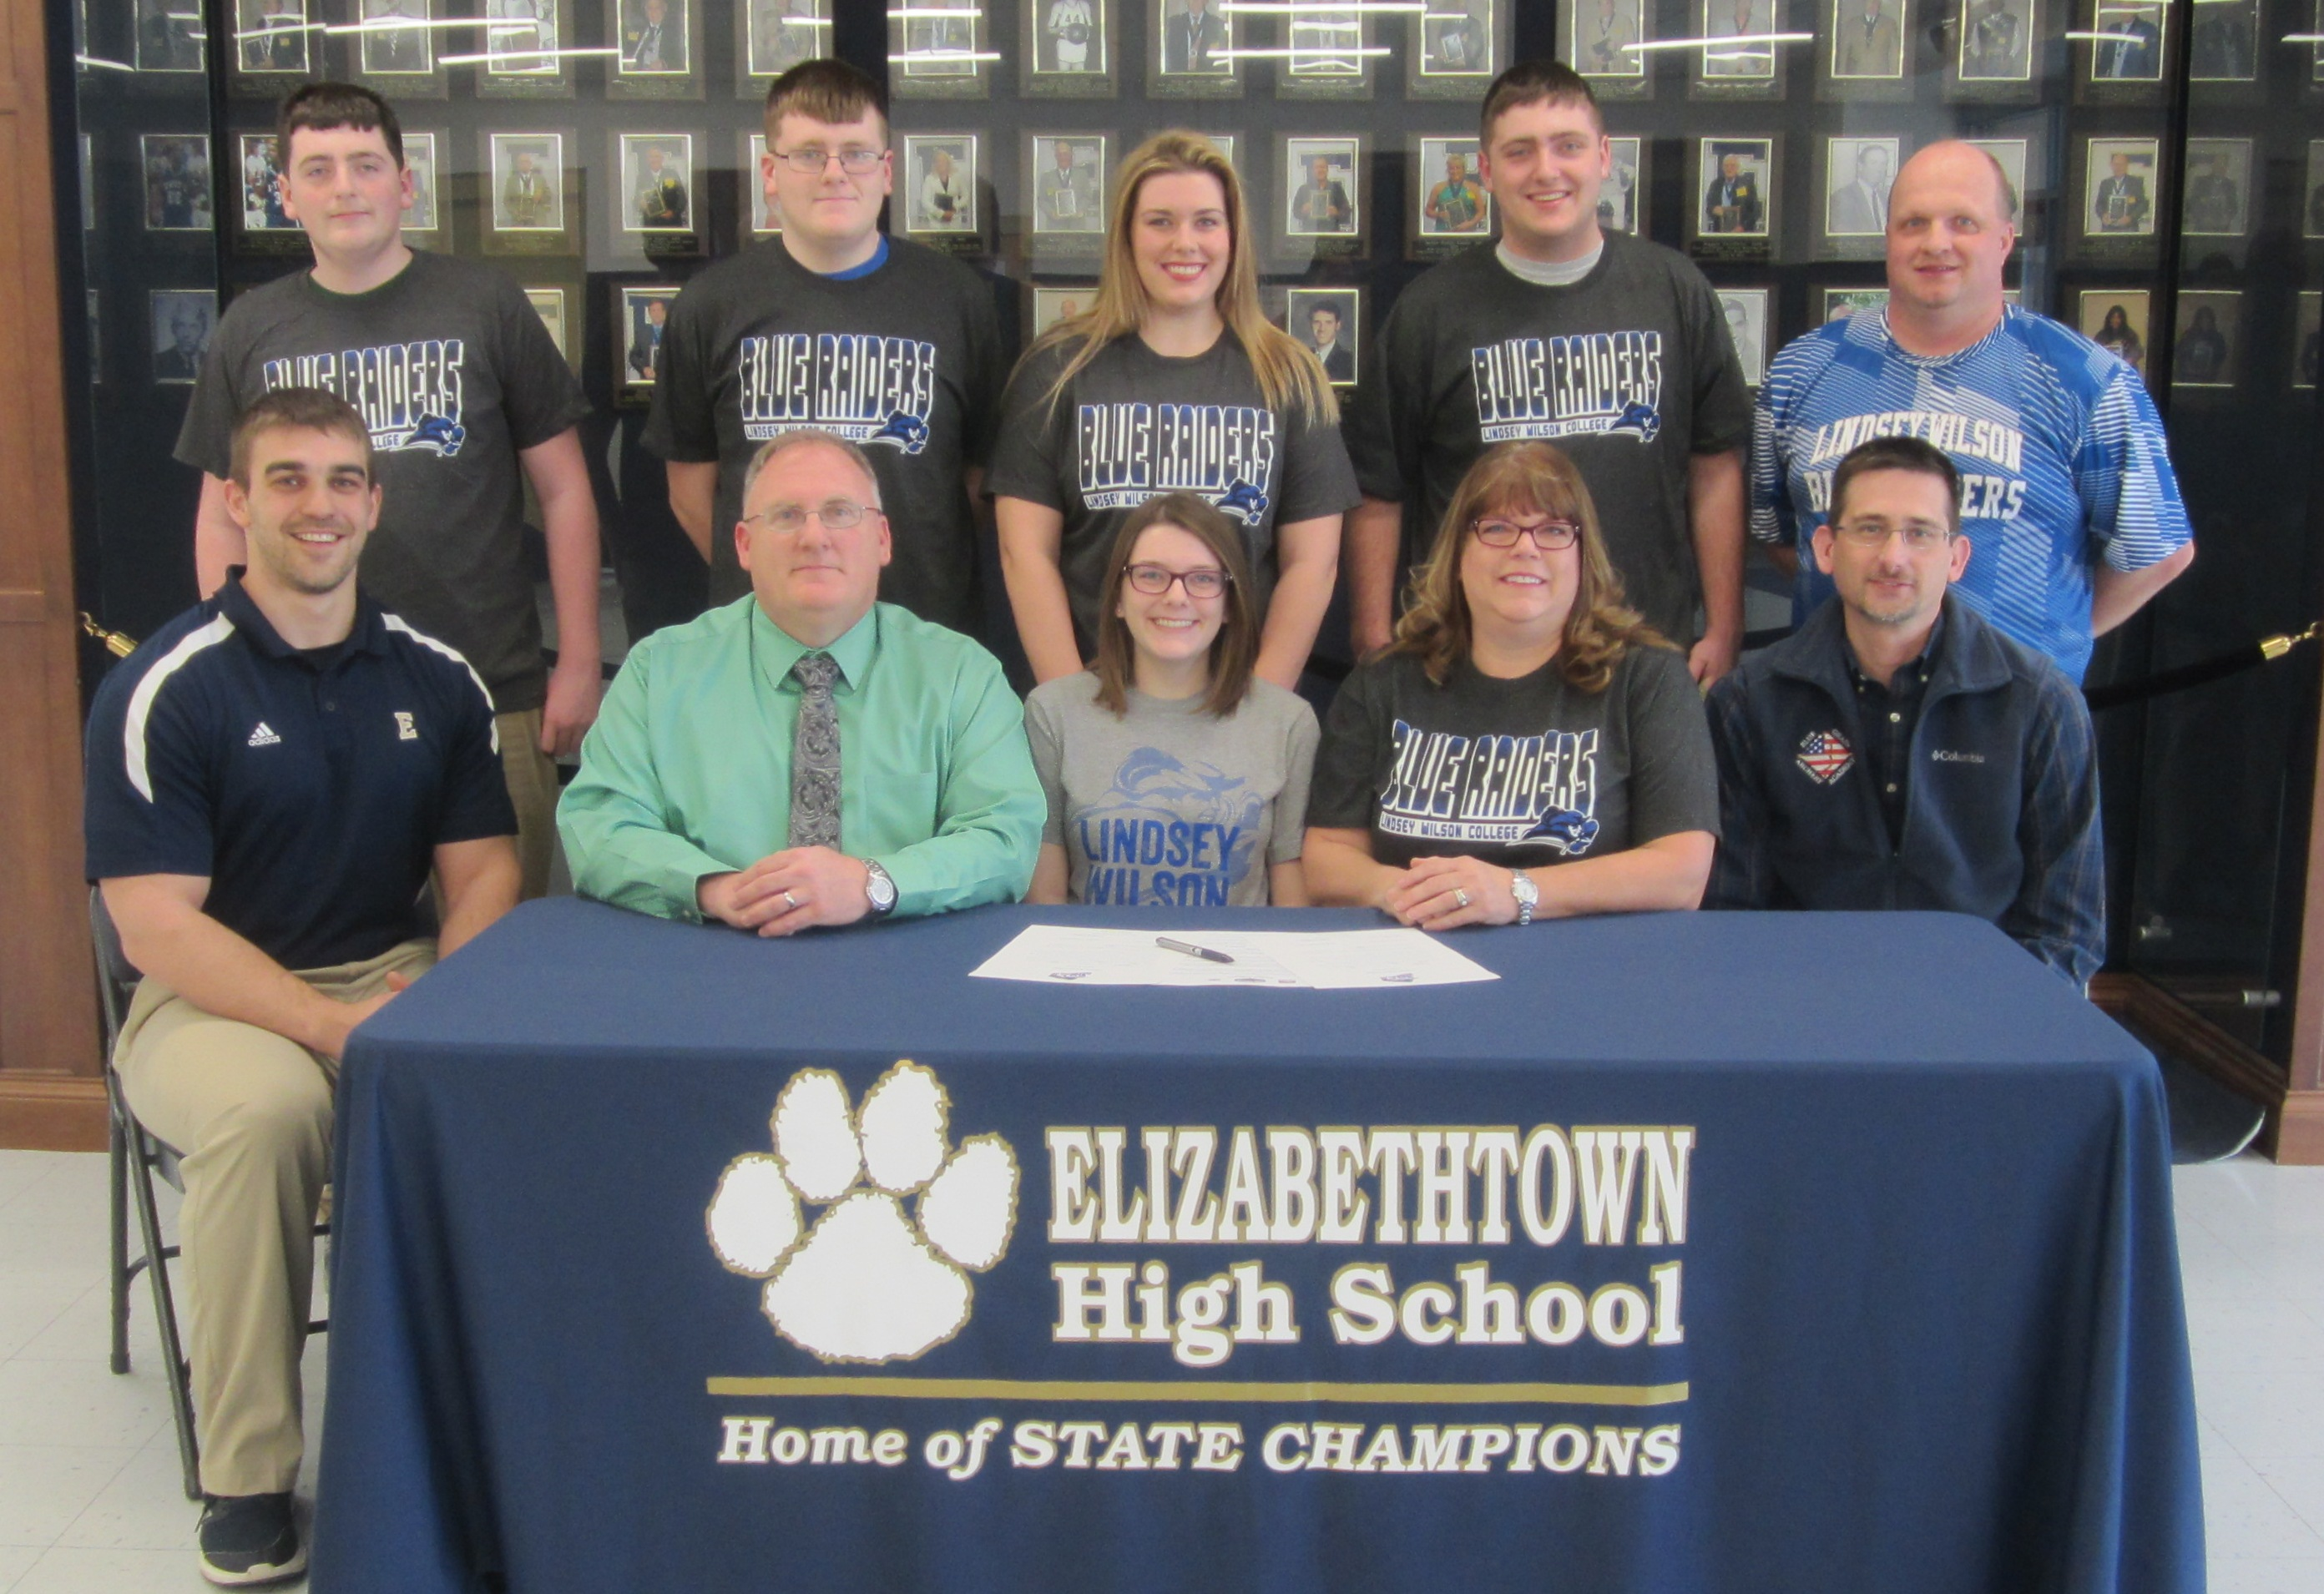 Olivia Harner has committed to the Archery program at Lindsey Wilson College.